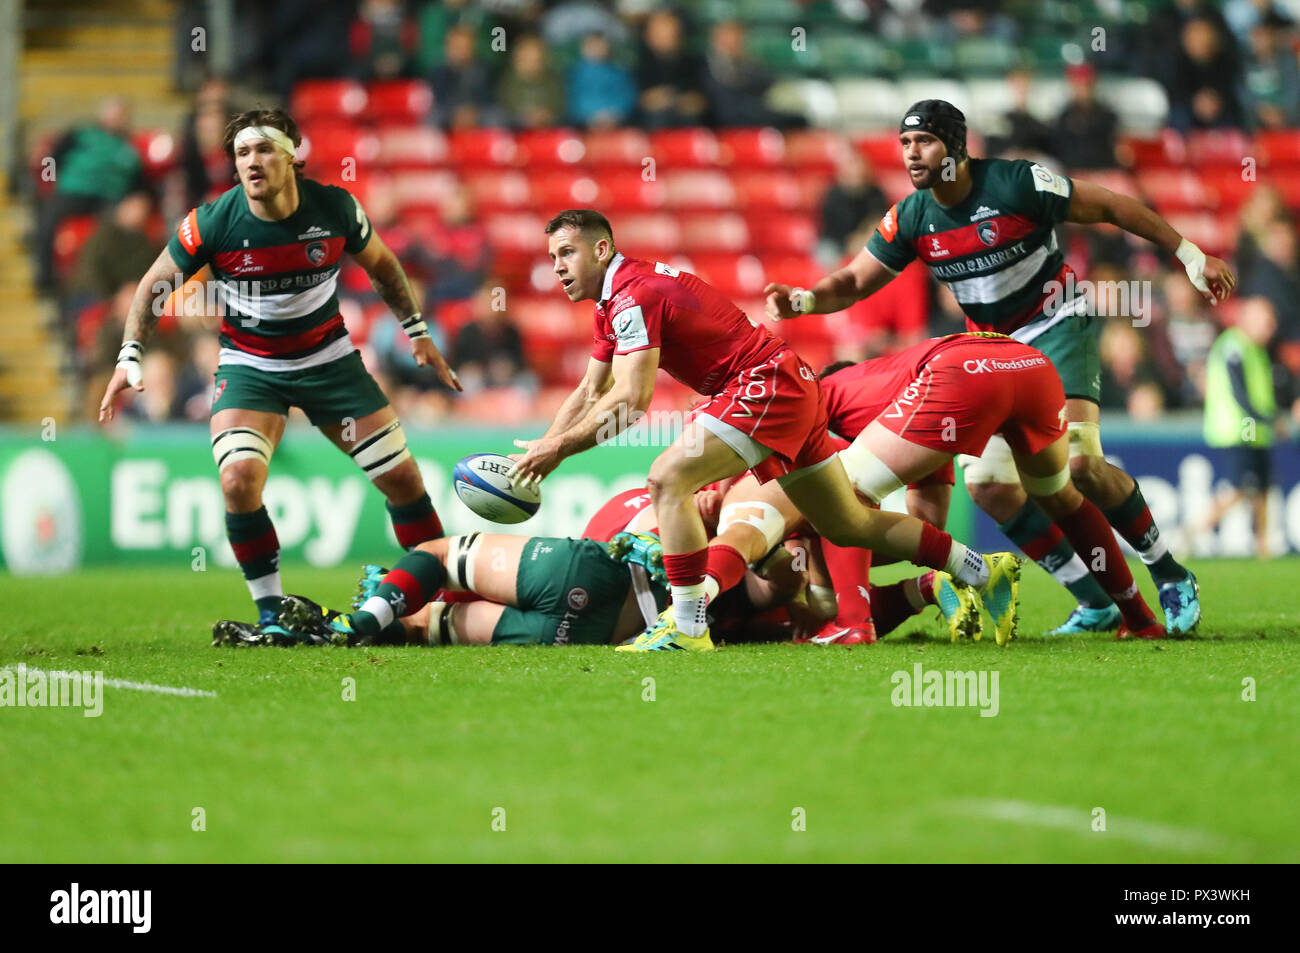 Rugby Attack Imágenes De Stock & Rugby Attack Fotos De Stock - Alamy